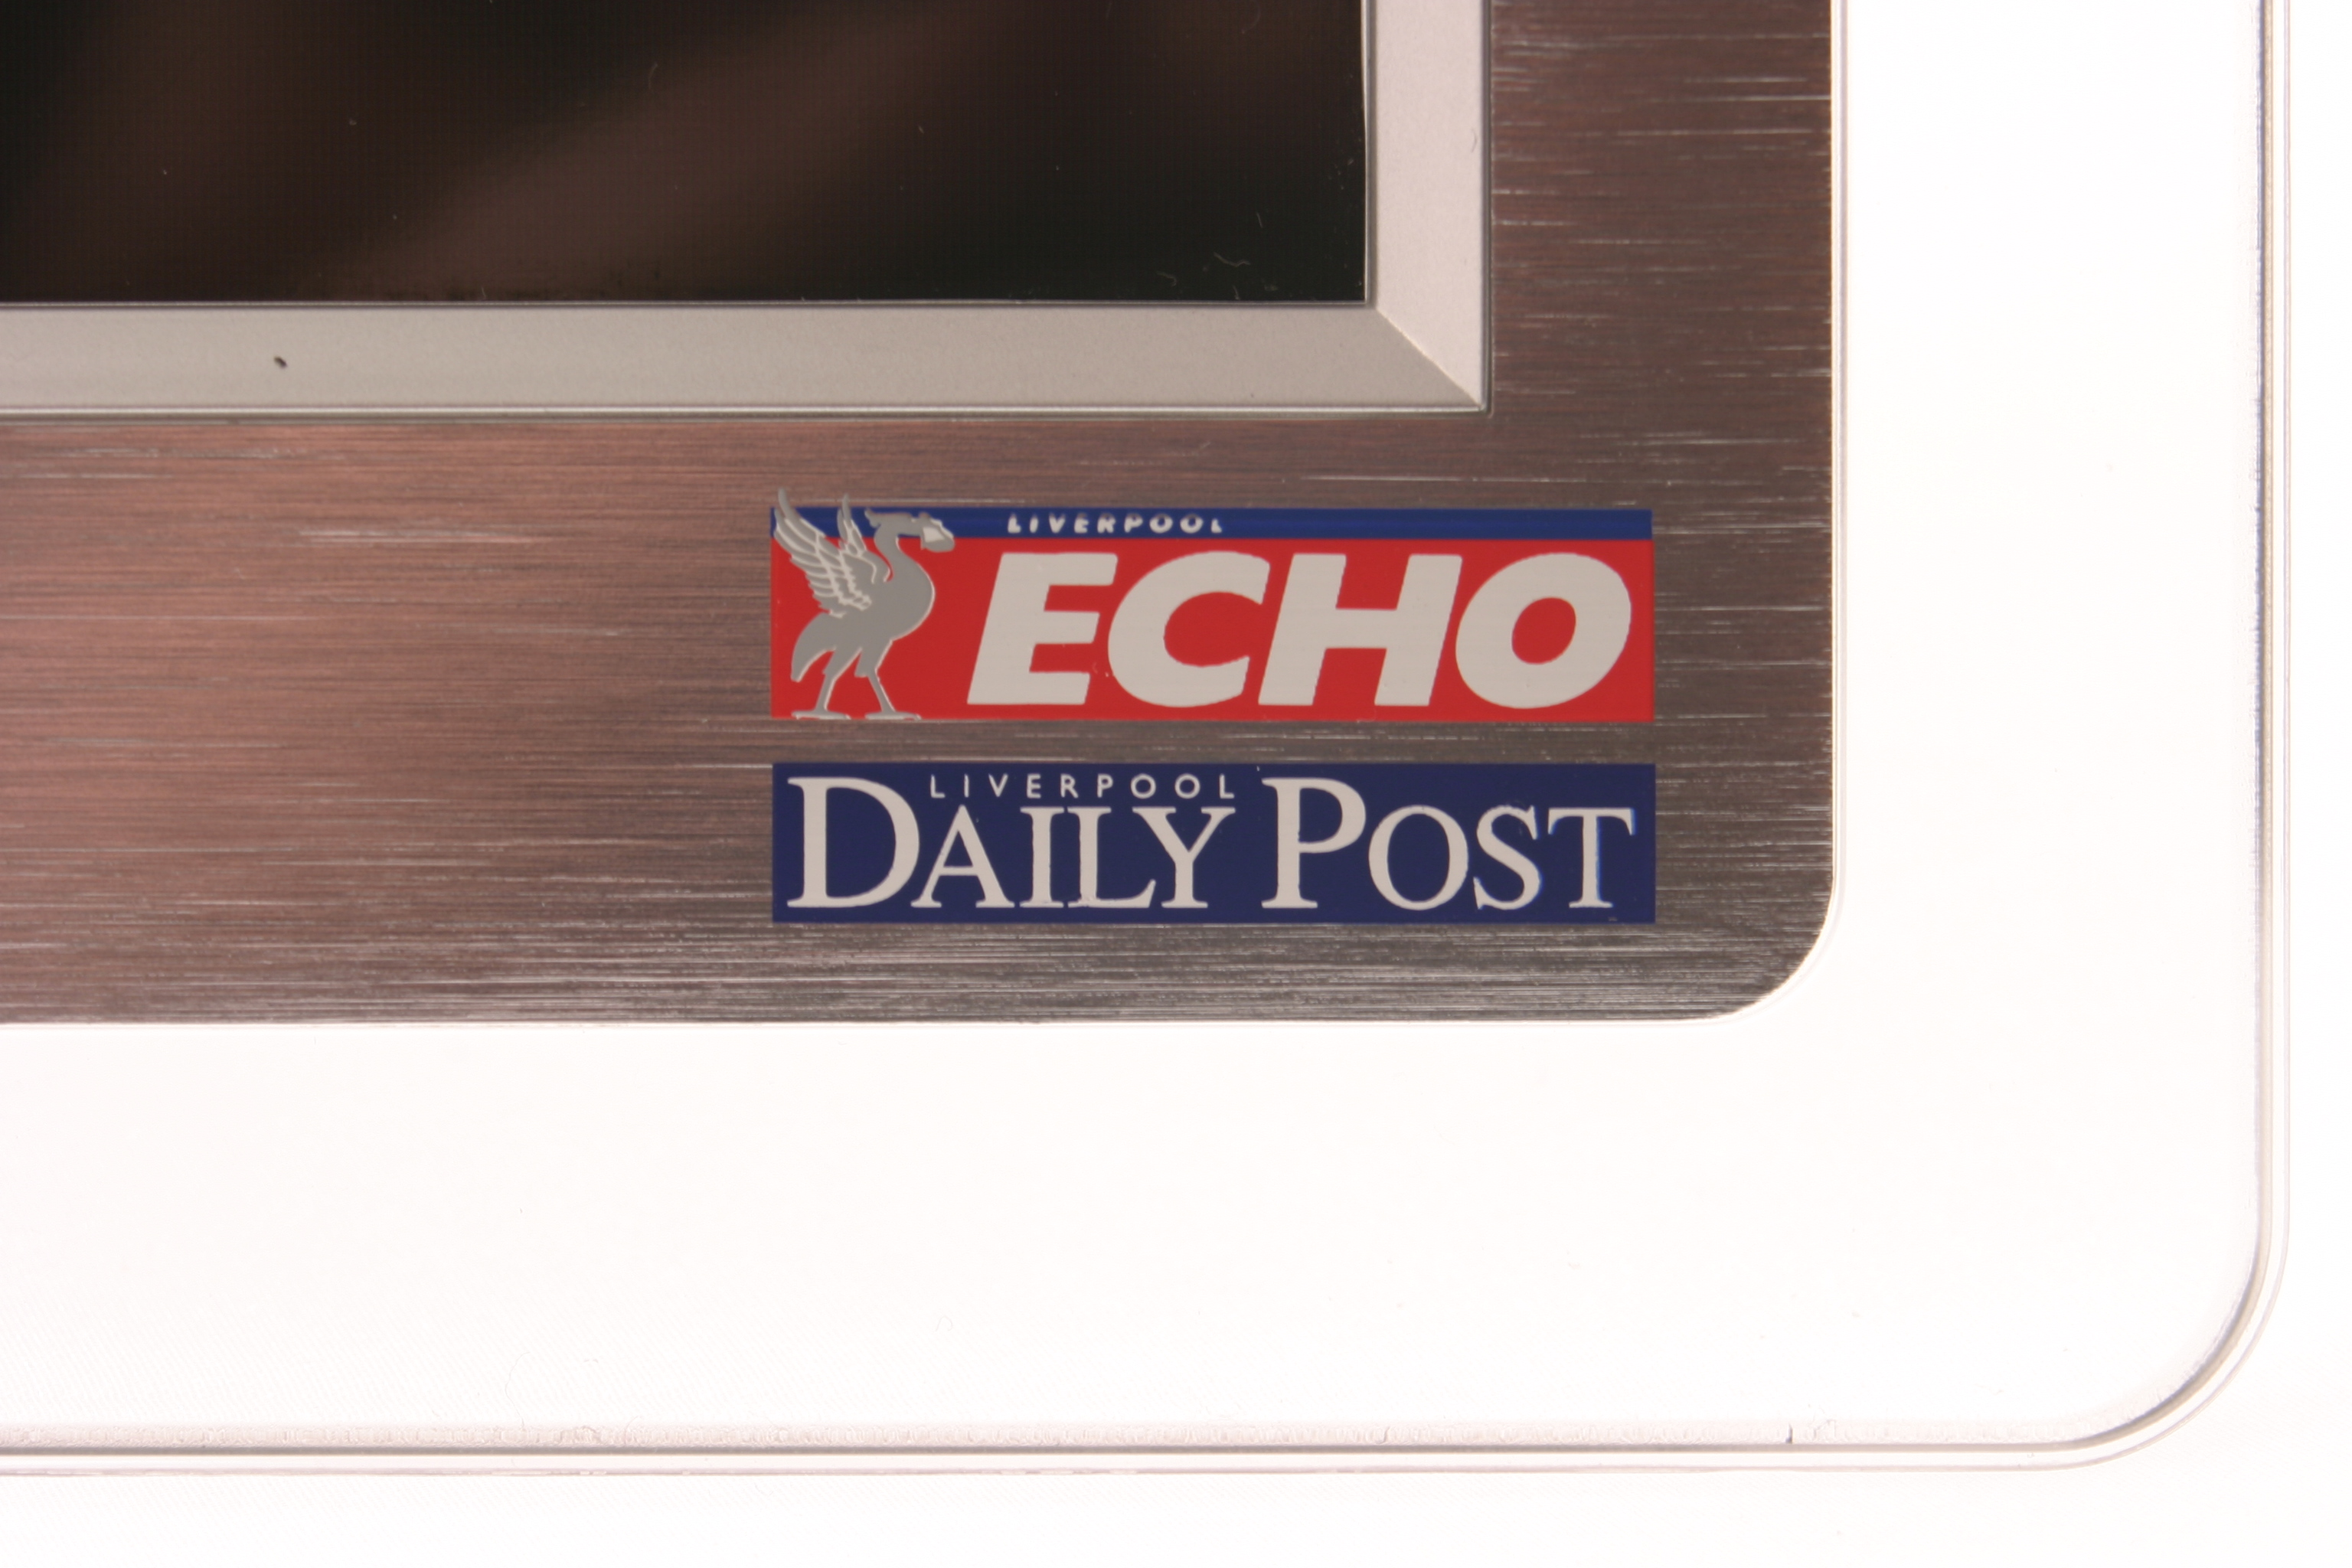 Echo Daily Post